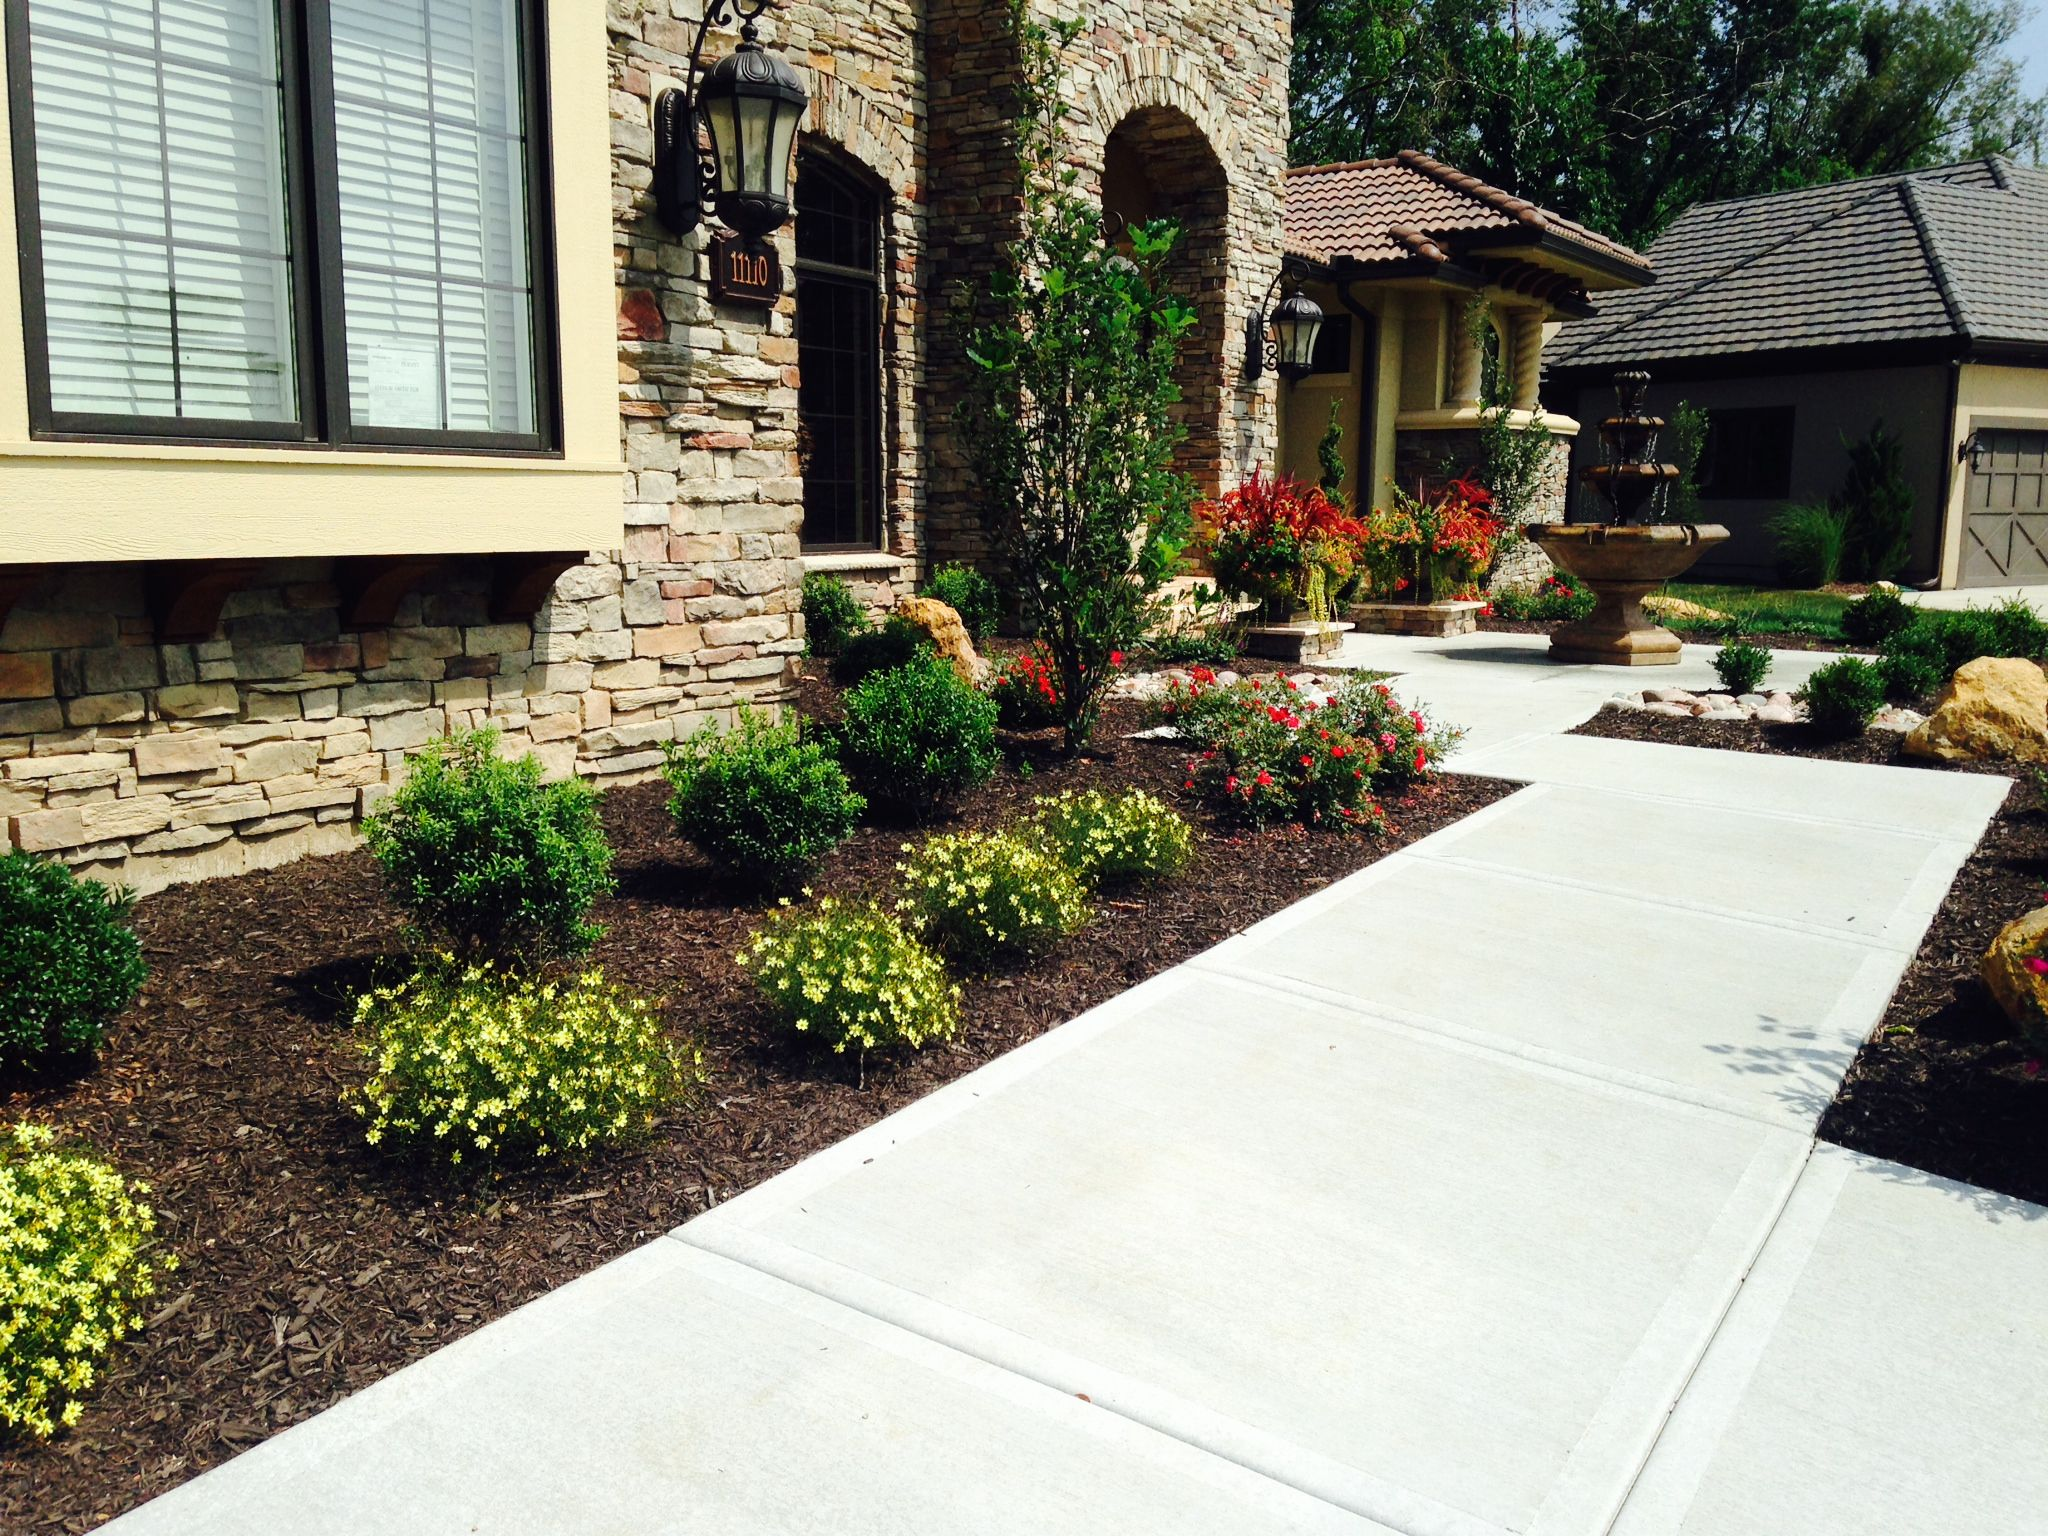 Landscaping Front Entrance Front Yard Landscaping Sidewalk Landscaping Lawn Care Companies